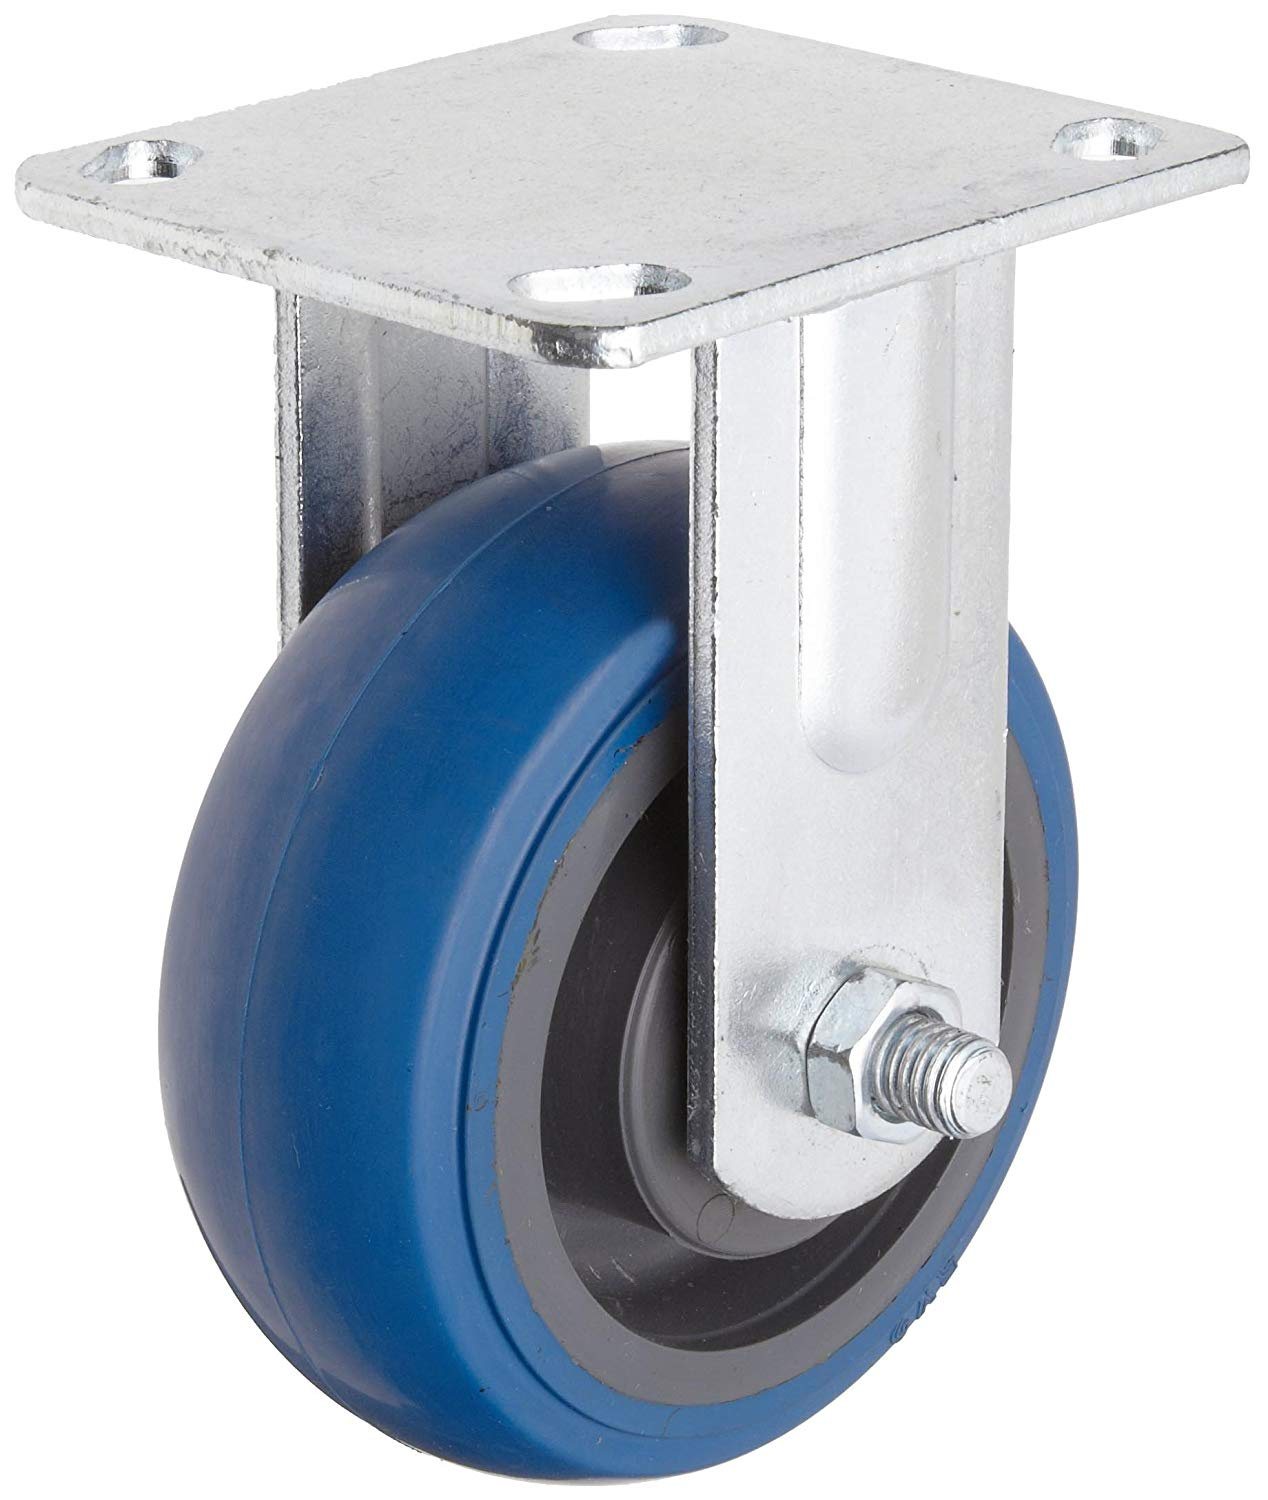 "RWM Casters S65 Series Plate Caster, Rigid, Kingpinless, Urethane on Polypropylene Wheel, Stainless Steel Plate, Ball Bearing, 750 lbs Capacity, 5"" Wheel Dia, 2"" Wheel Width, 6-1/2"" Mount Height, 4-1/2"" Plate Length, 4"" Plate Width"